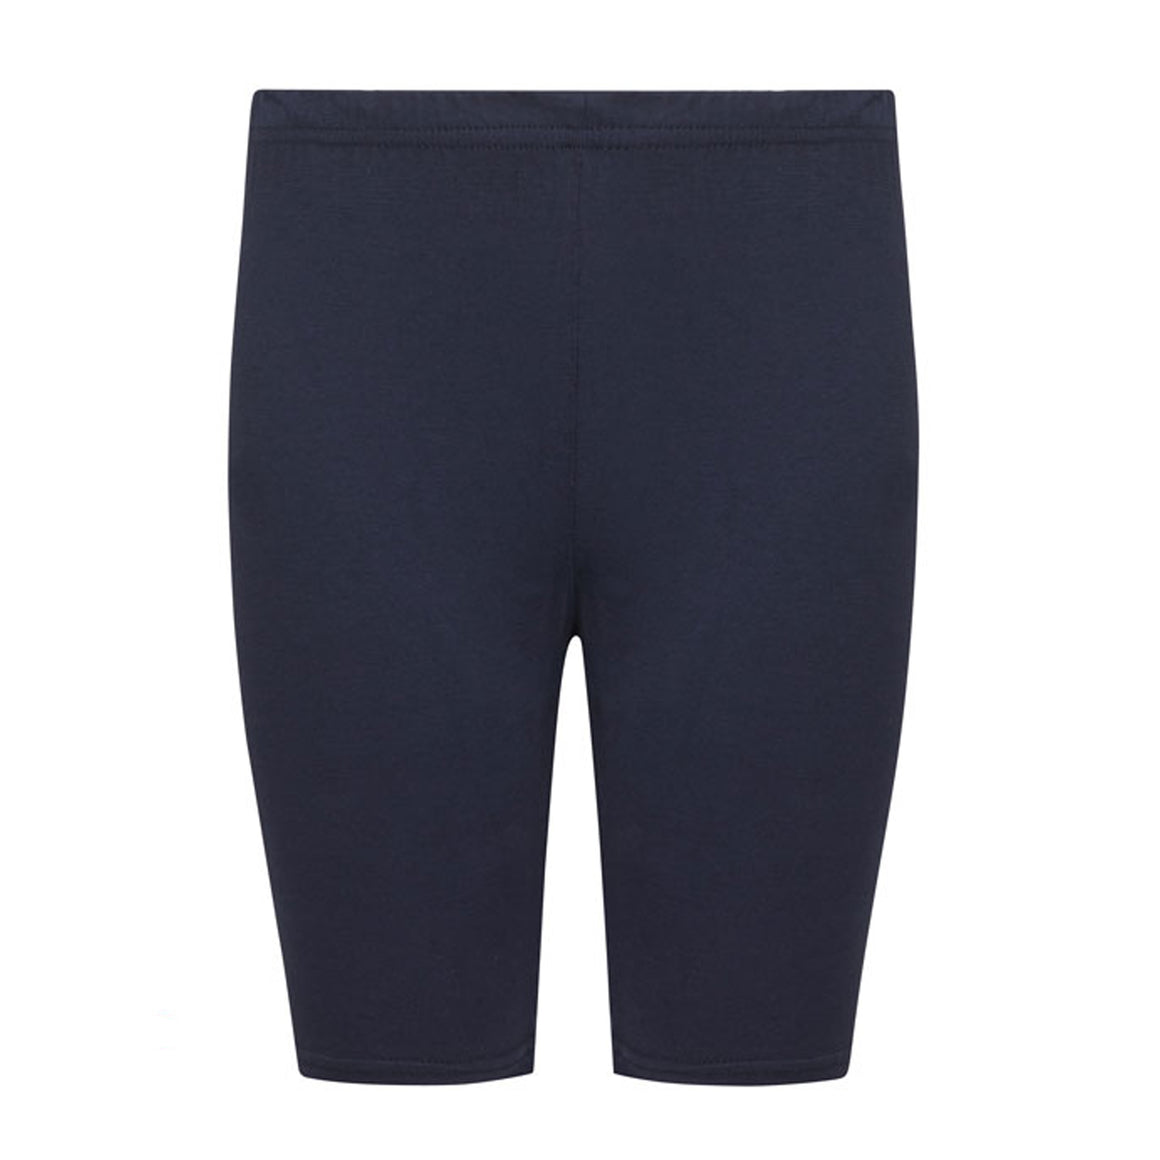 Cycle Short - Stretch Cotton - Navy